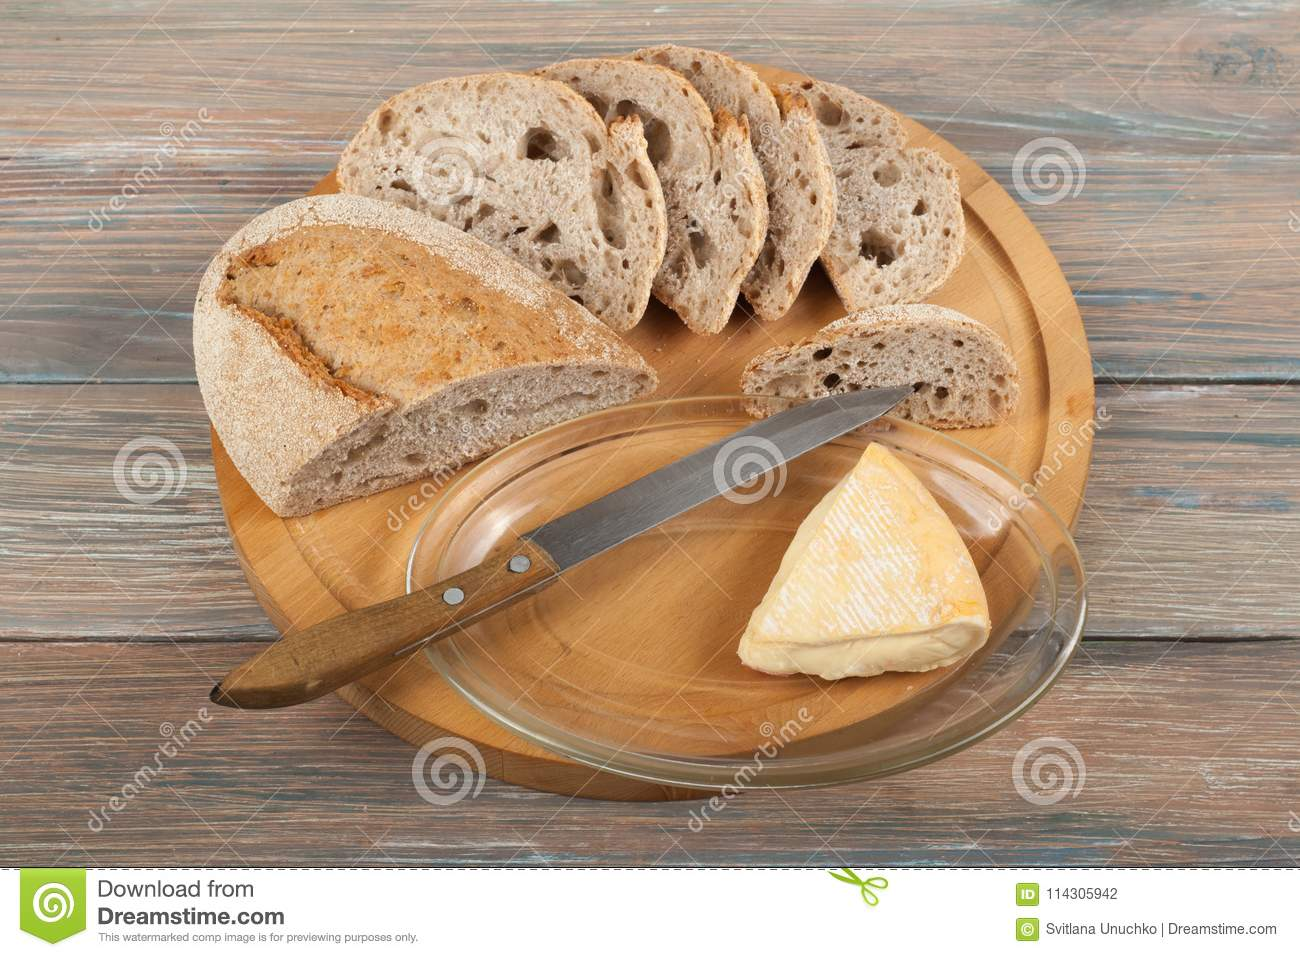 Many mixed breads and rolls of baked bread on wooden table background.